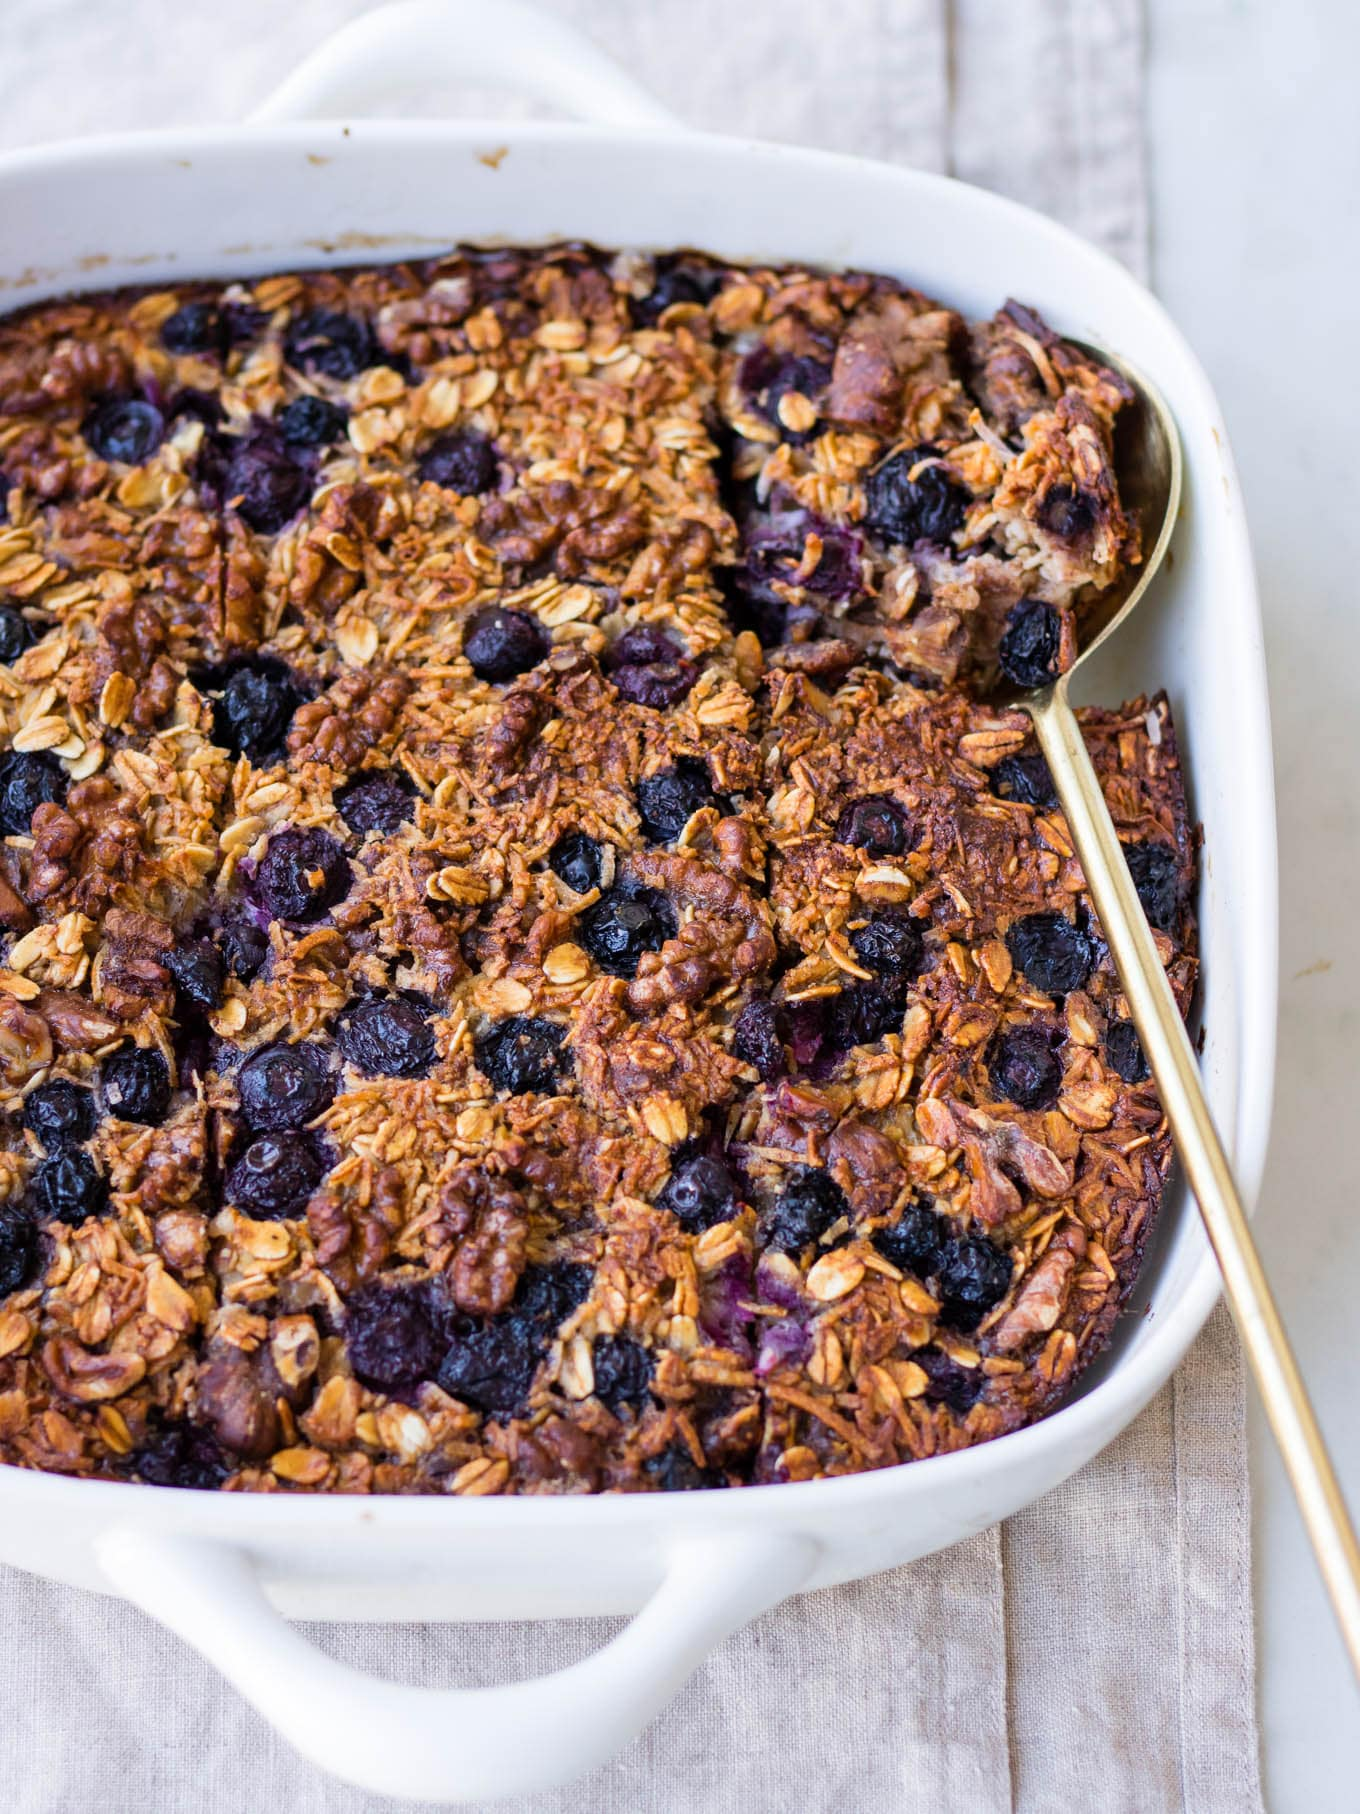 coconut blueberry baked oats in white square baking dish